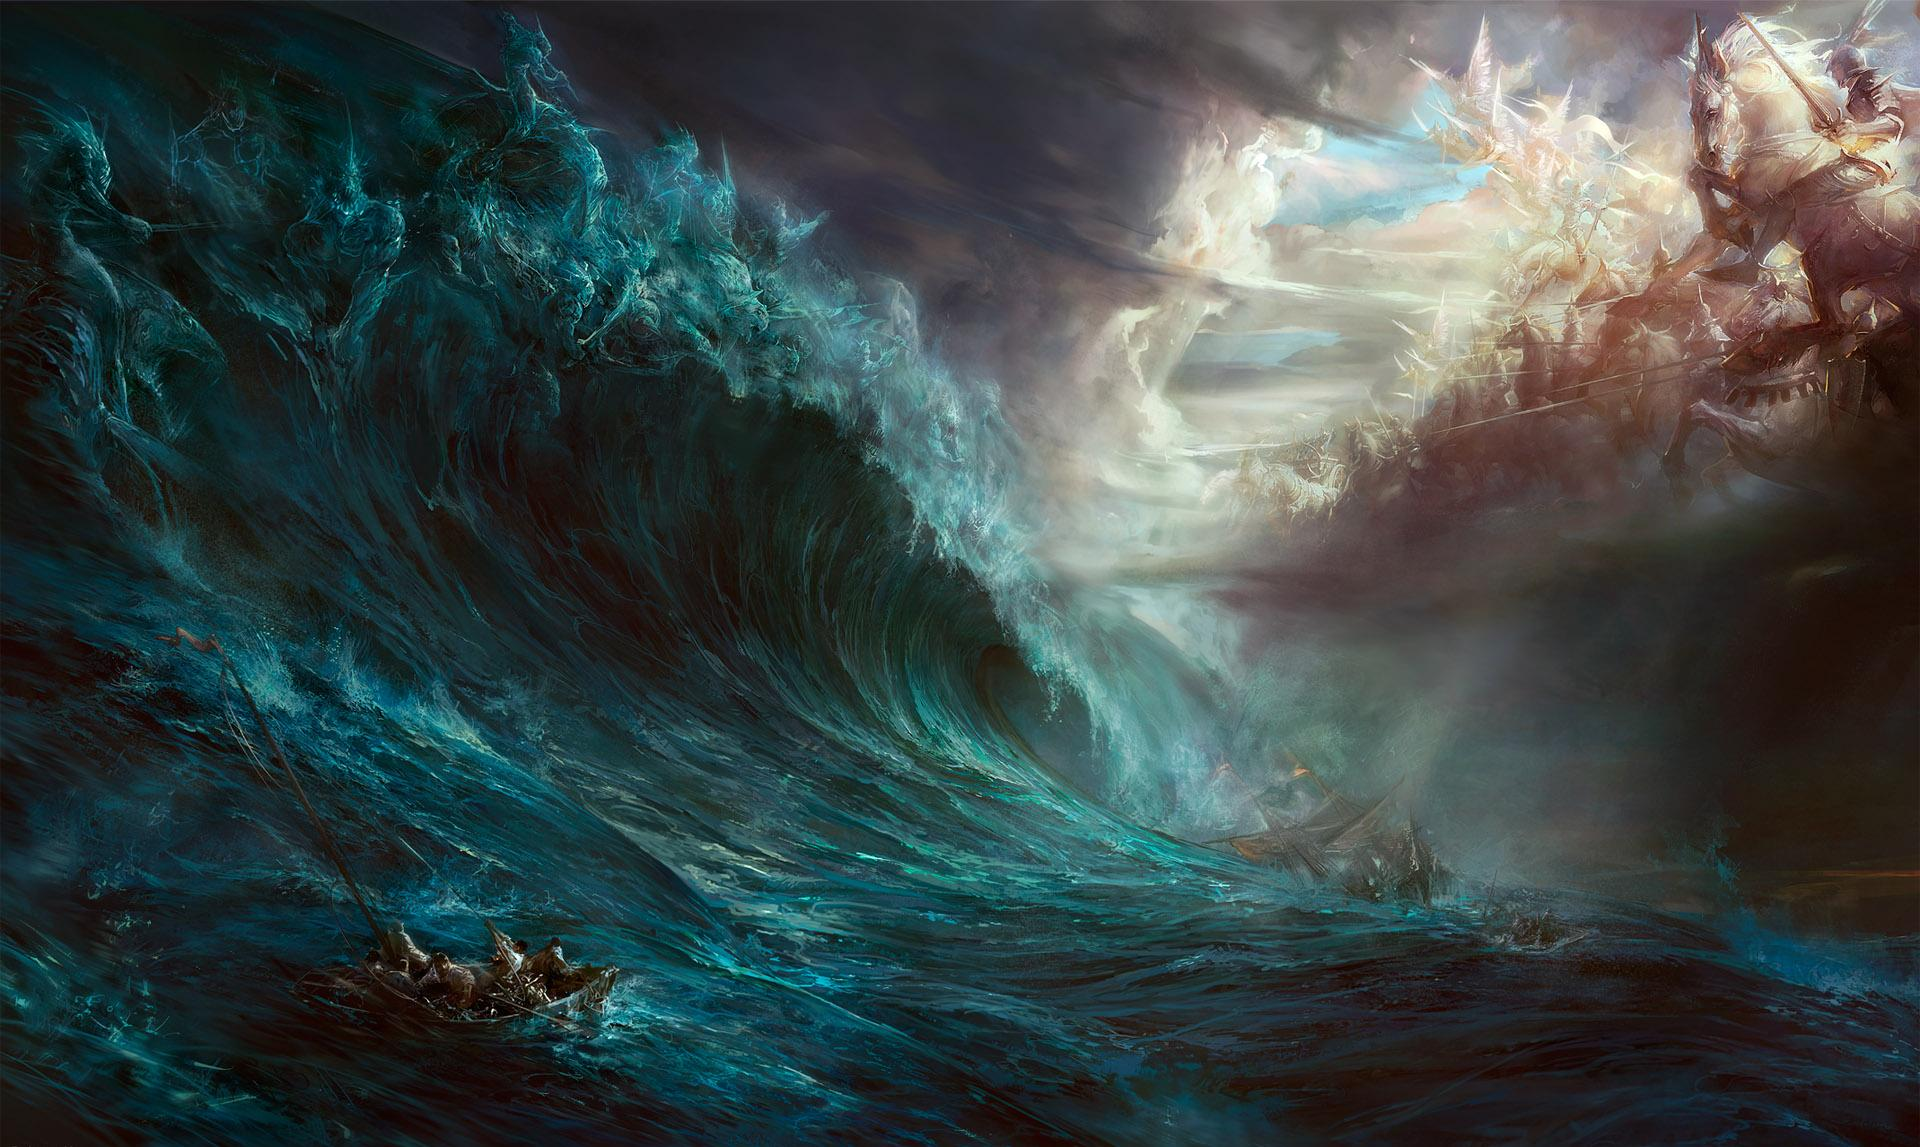 Fantasy - Gods  Rag Krig Wave Big Himmel Water Element Sinking Ship Bakgrund